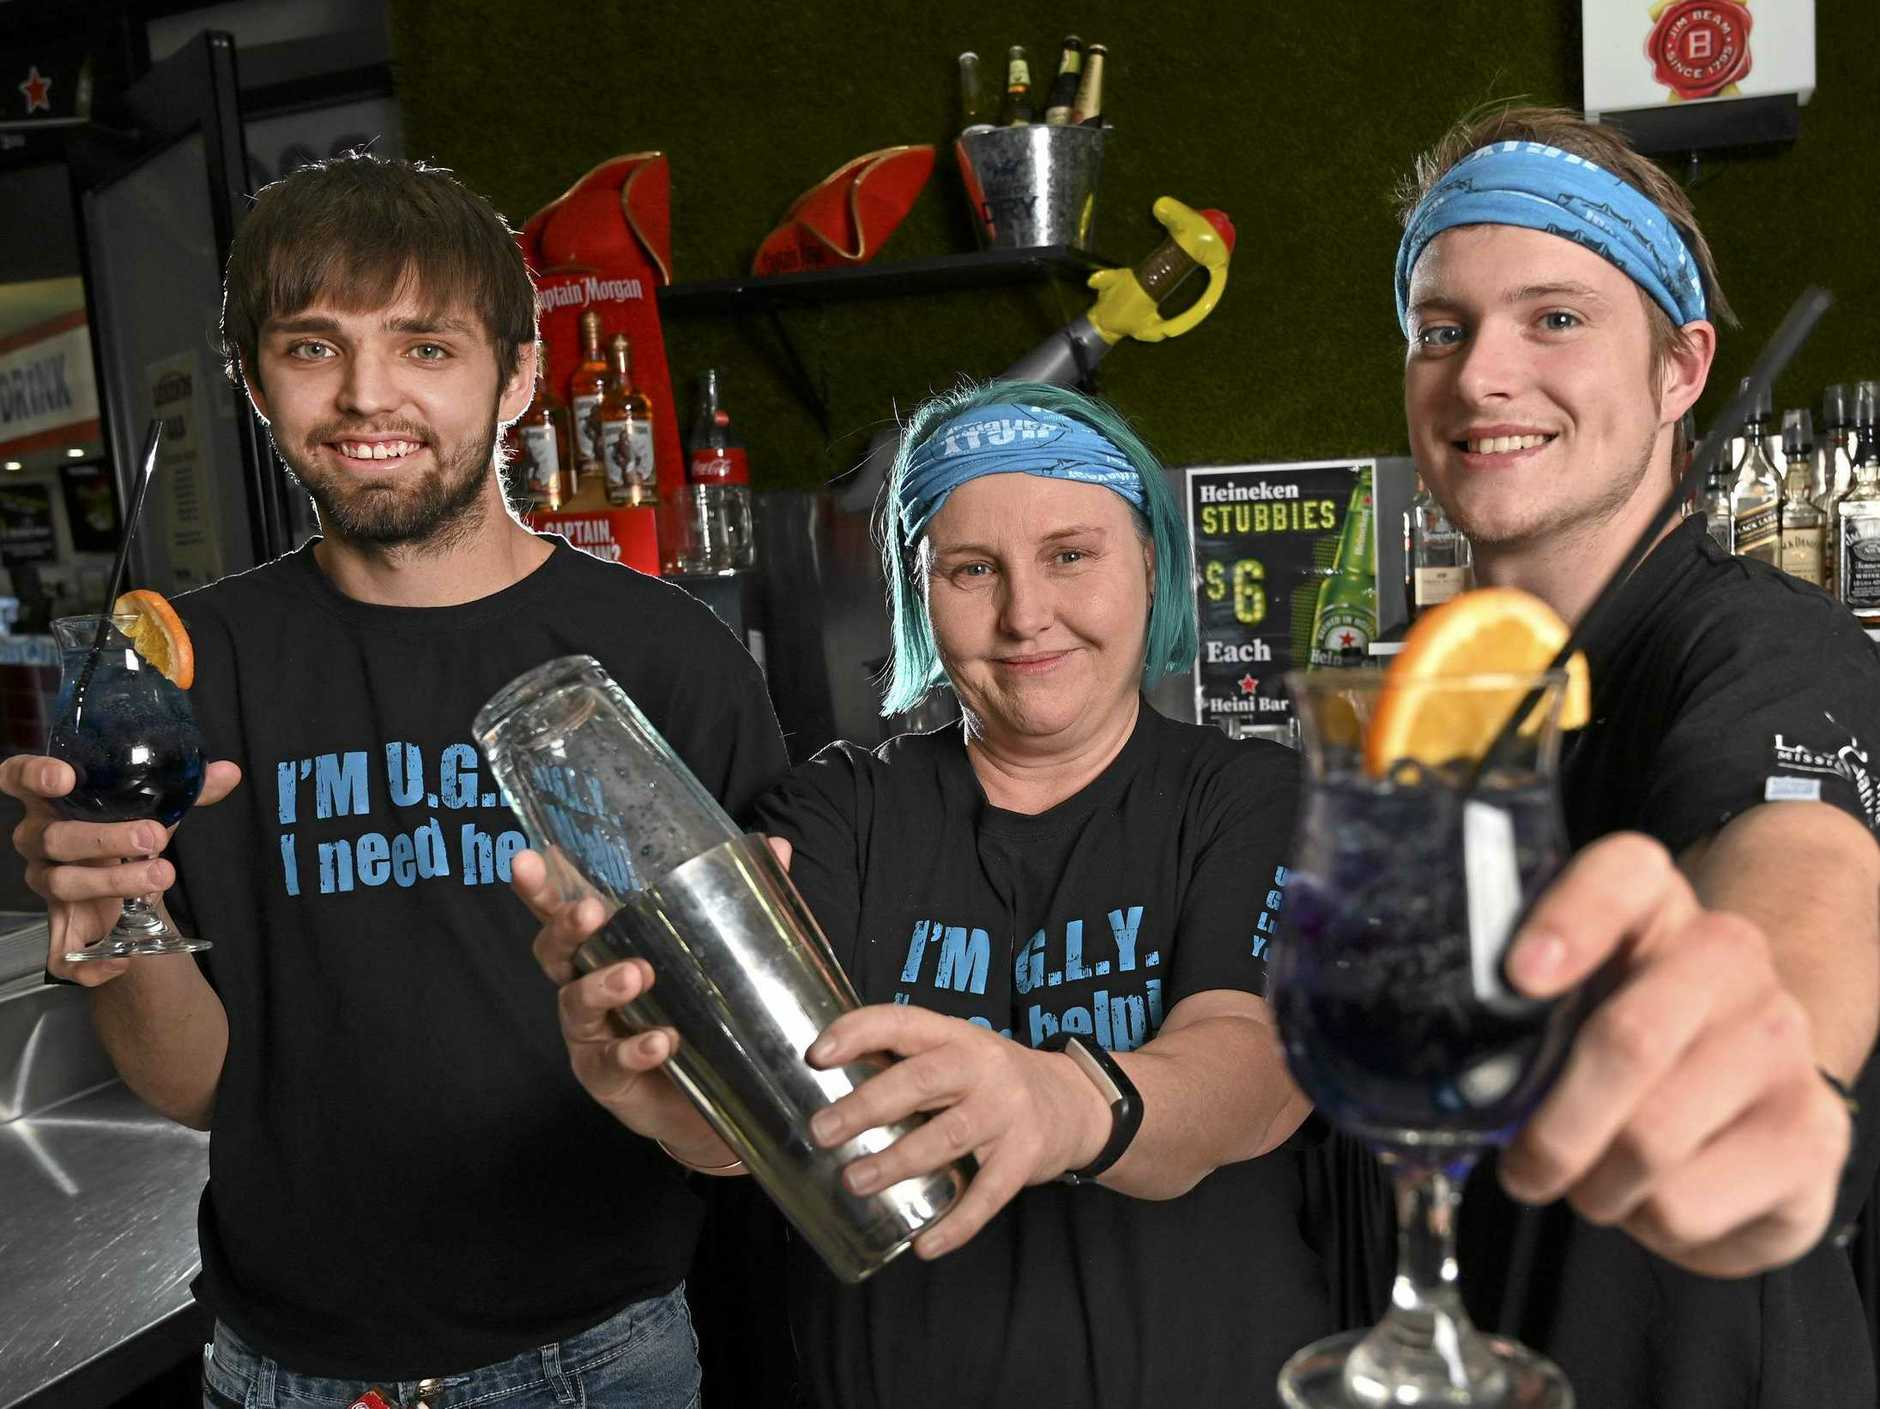 JOIN THE FIGHT: Brady McKeough, Barb O'Connell and Nathan Moulds are all bartenders at Goodna Services Club, who will take part in the U.G.L.Y Bartender cause on Sept 6.